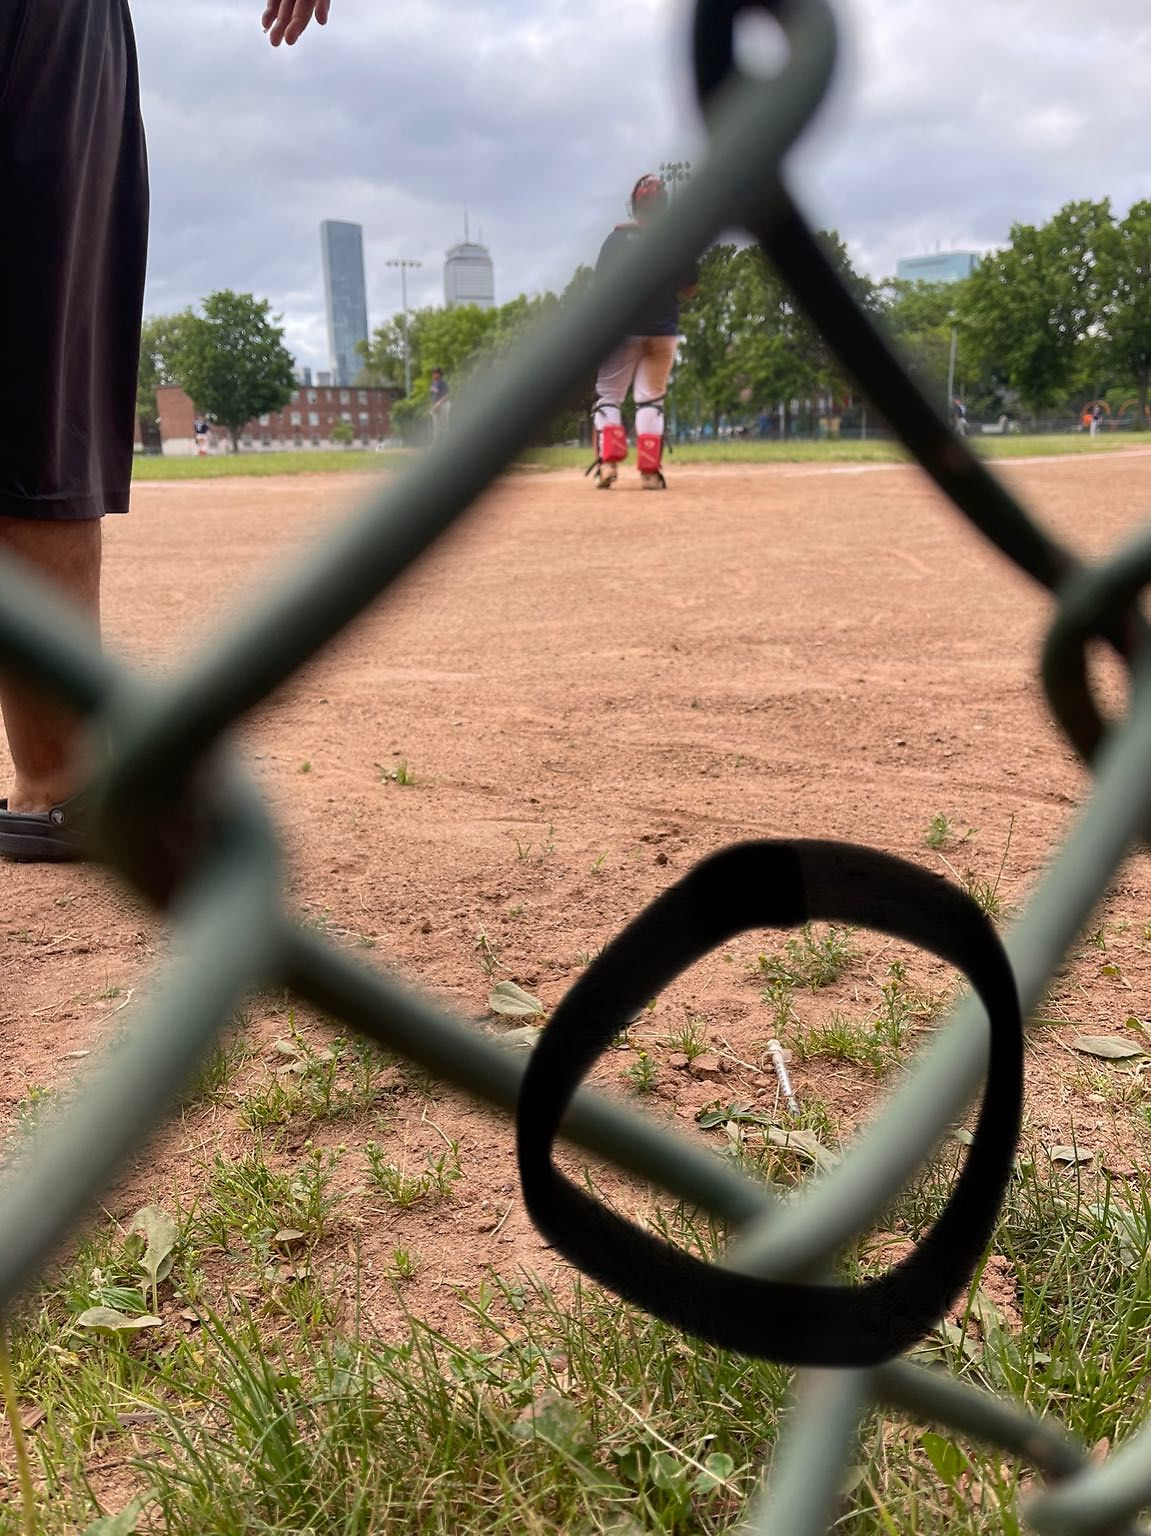 It's so terrible to watch my son's baseball game with needles on the field. Today there was ONLY one. It has been removed but PLEASE HELP us and clean up Jim Rice. It's a city park! The kids need you and a better and safer place to play!…